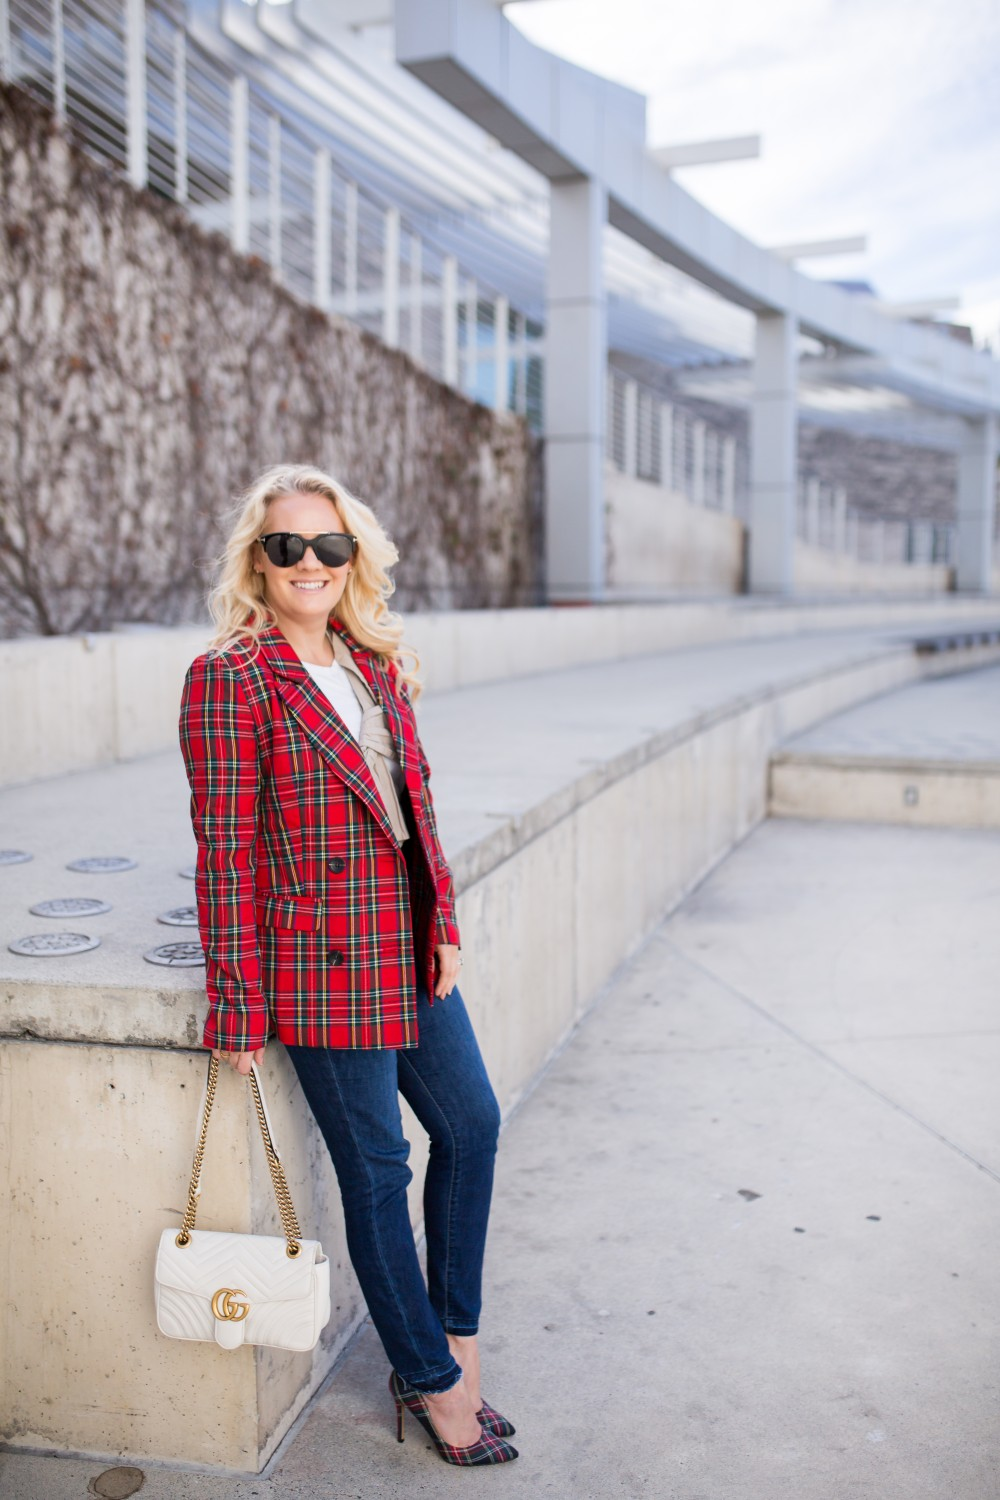 Getting Into the Holiday Spirit Wearing a Tartan Blazer and Plaid Pumps - Have Need Want #holidaystyle #plaidblazer #amazonfashion #primeholiday